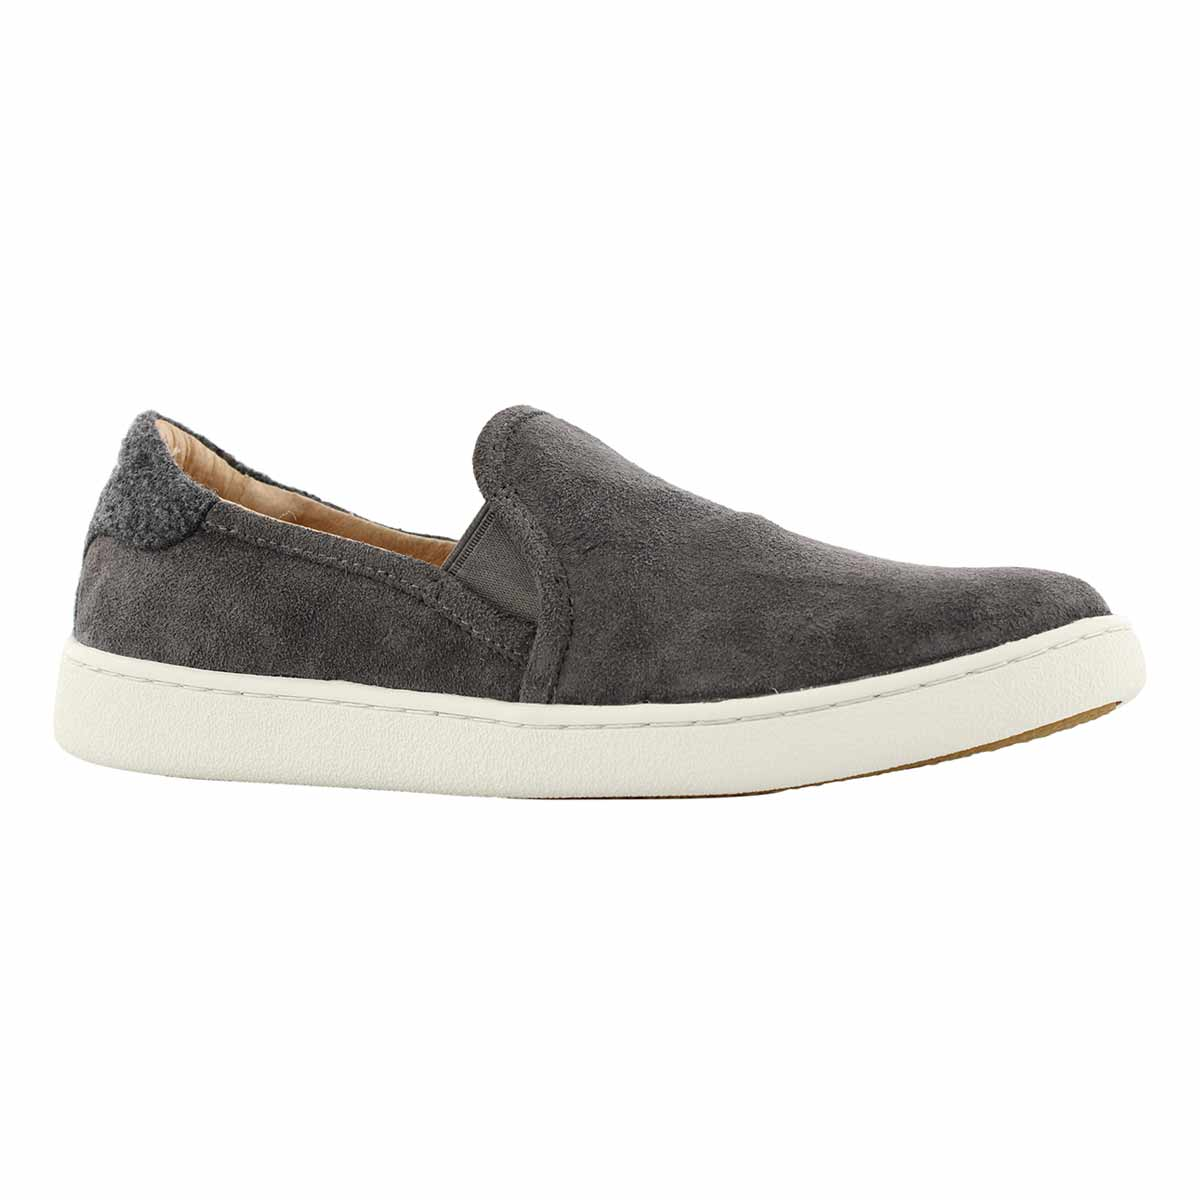 Lds Cas charcoal casual slip on shoe